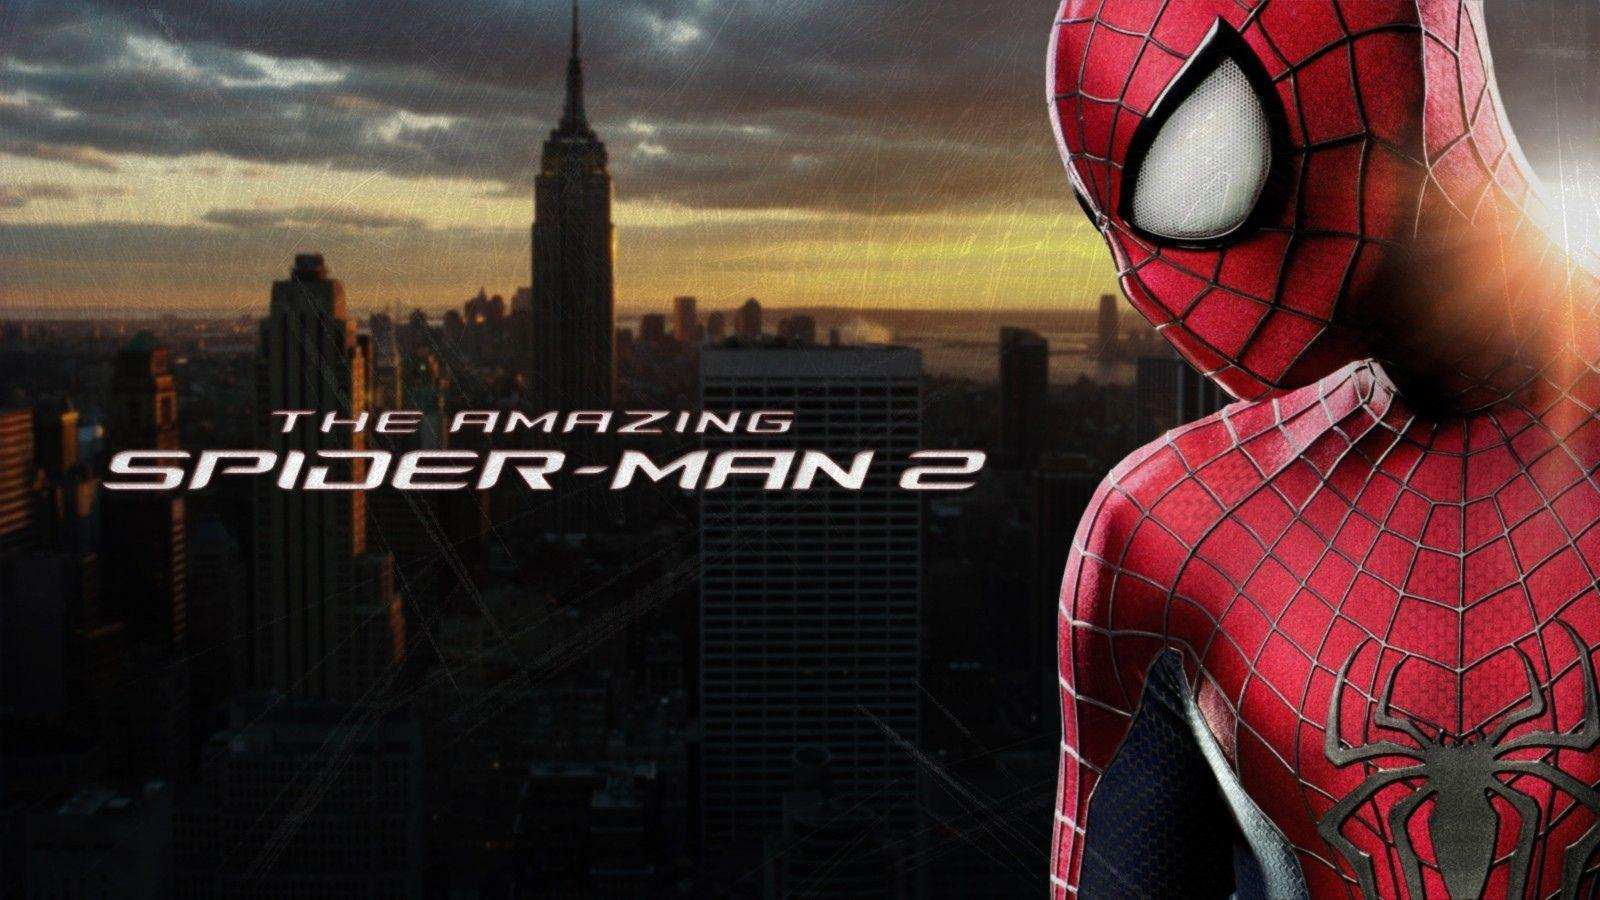 44 The Amazing Spider